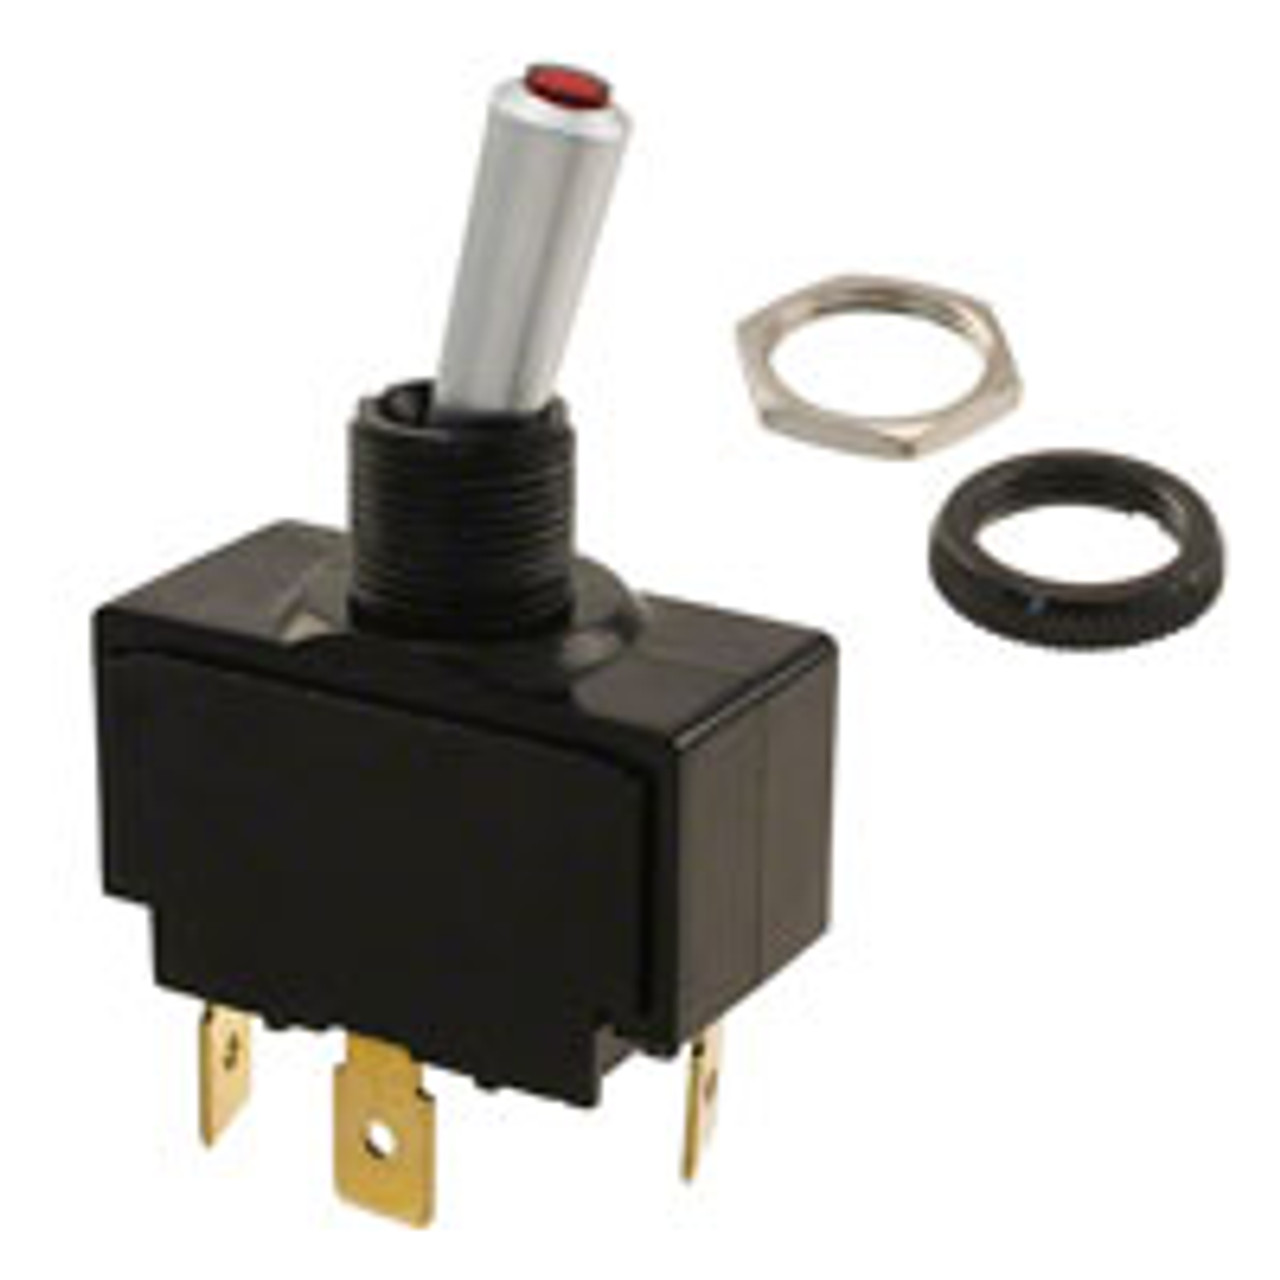 illuminated toggle switch wiring diagram lt 1511 610 012 carling red lit tip toggle switch  on off  single  lt 1511 610 012 carling red lit tip